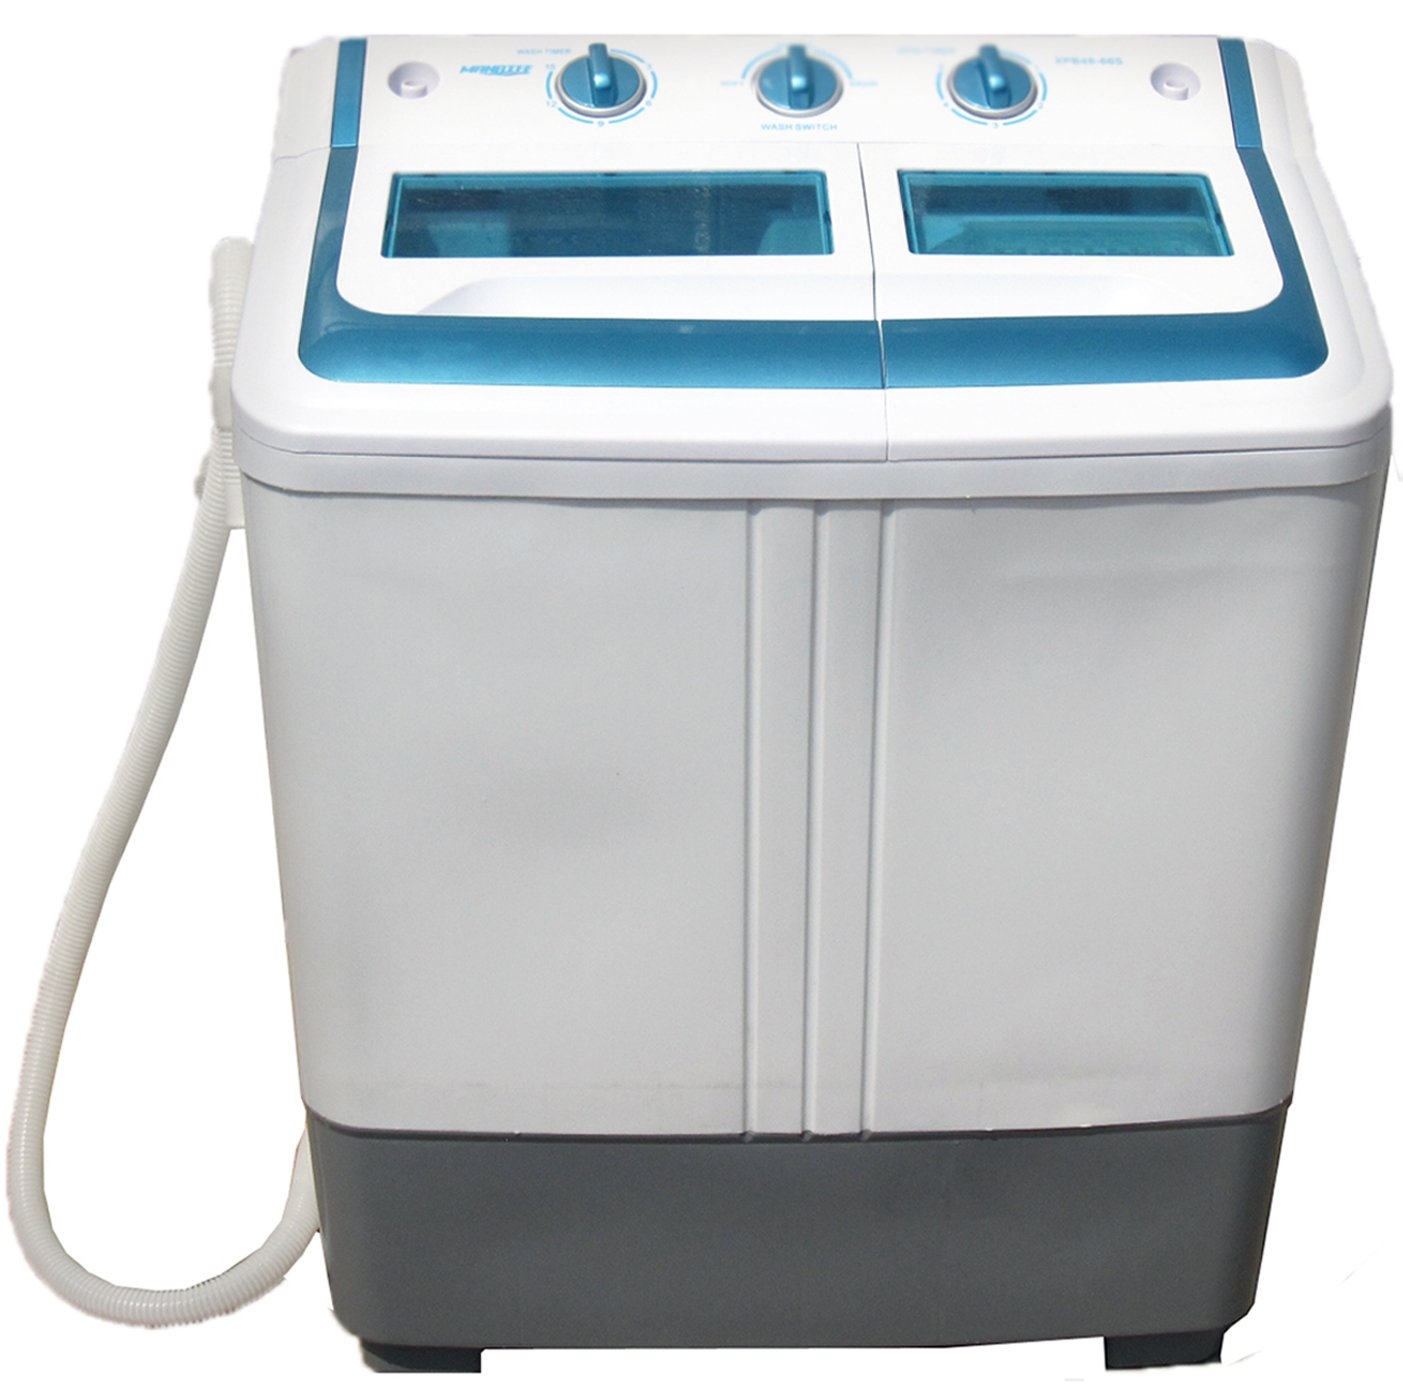 Mini Washing Machine (11 Lbs Capacity) Portable Compact Washer and Spin Dryer with BUILT-IN PUMP From Manatee - Great for Apartments, Dorms, Condos, Rvs and Camping